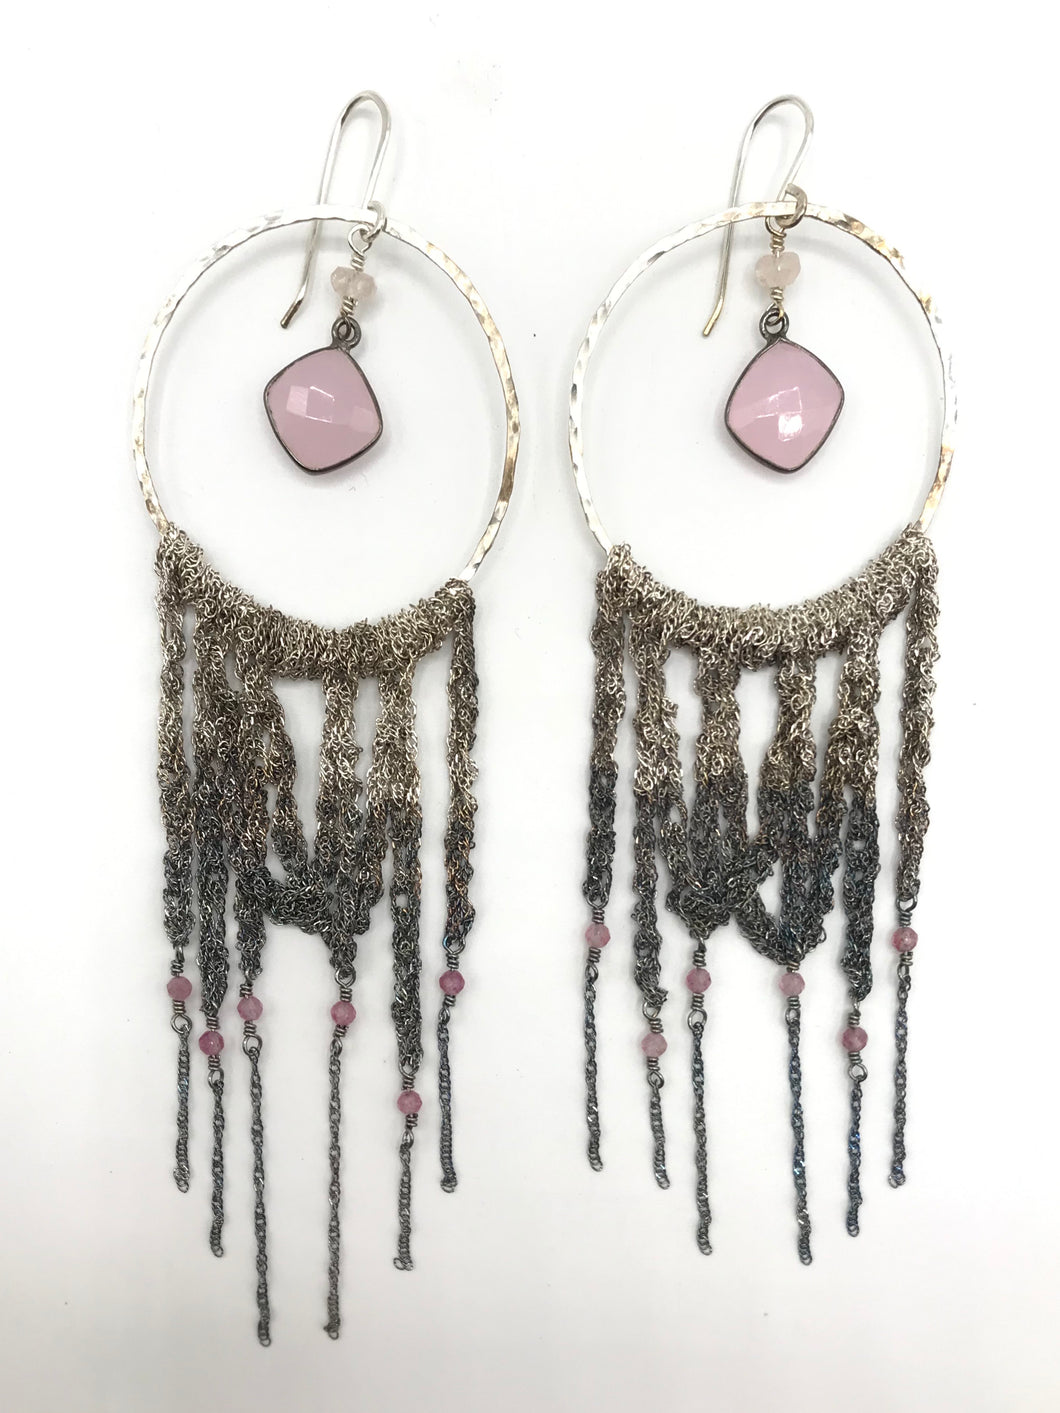 XL draped silver hoops with rose quartz